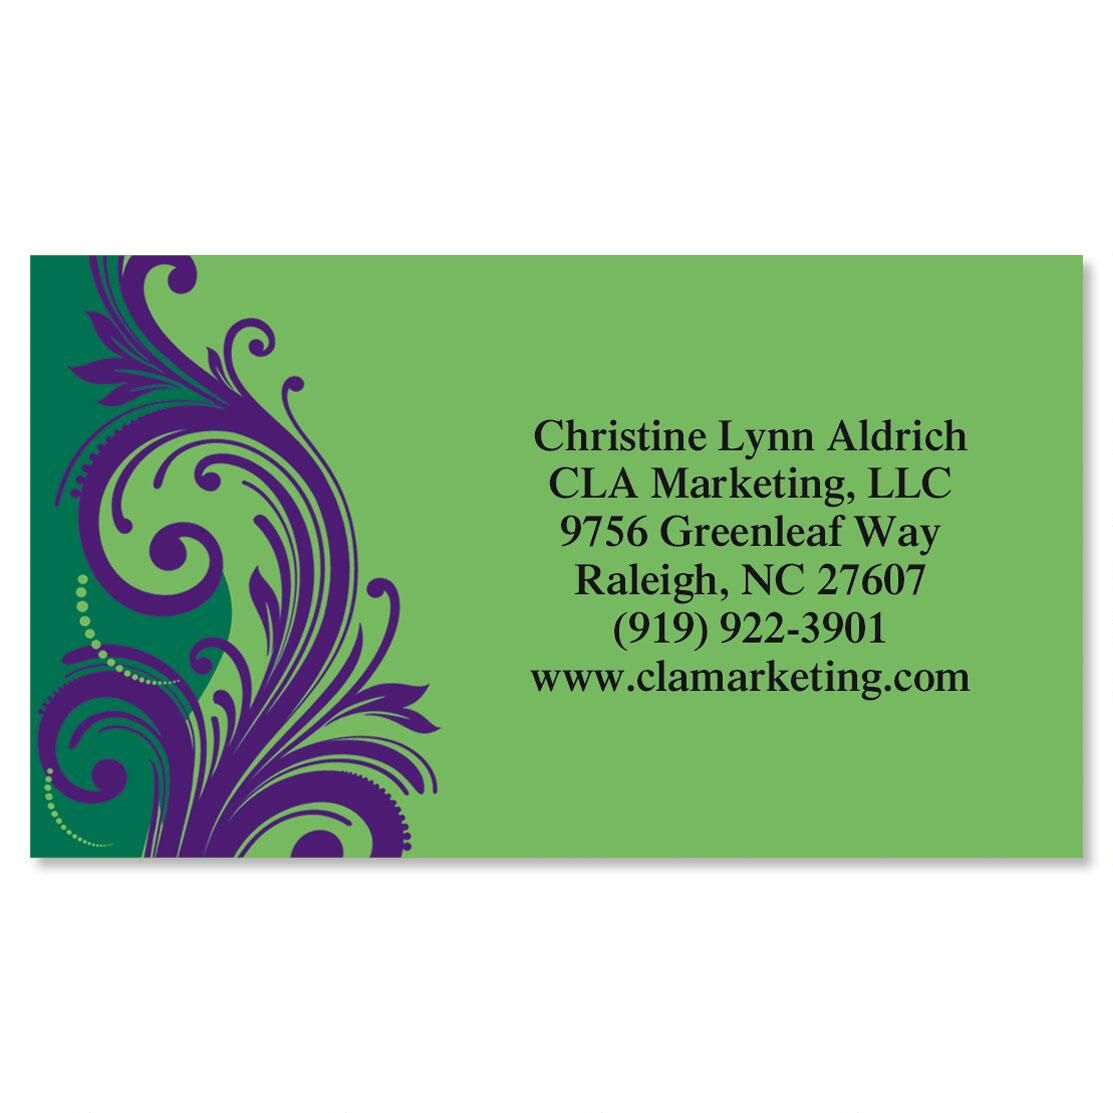 Emerald and royal standard calling card current catalog emerald and royal standard calling card reheart Gallery